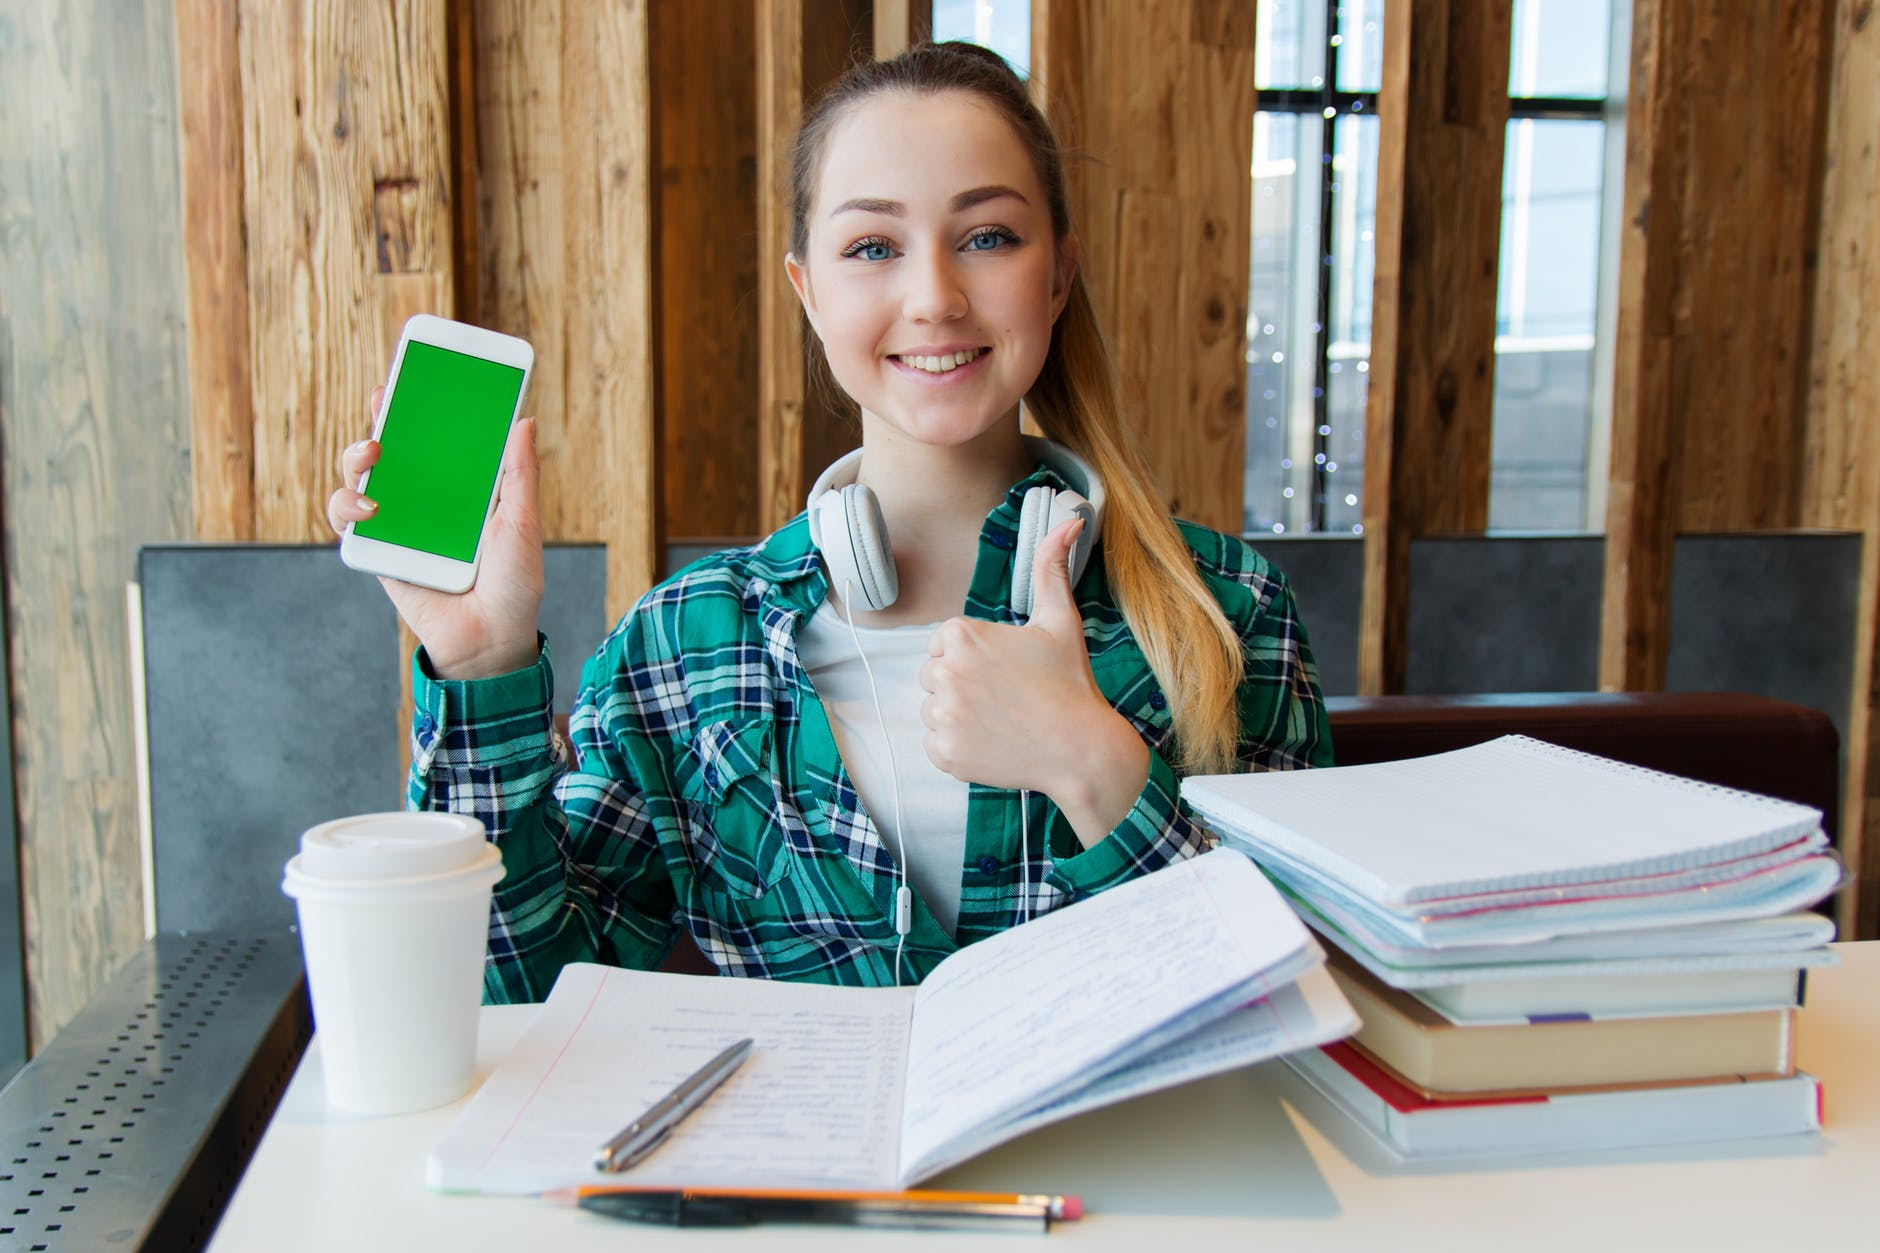 smiling woman holding white android smartphone while sitting front of table